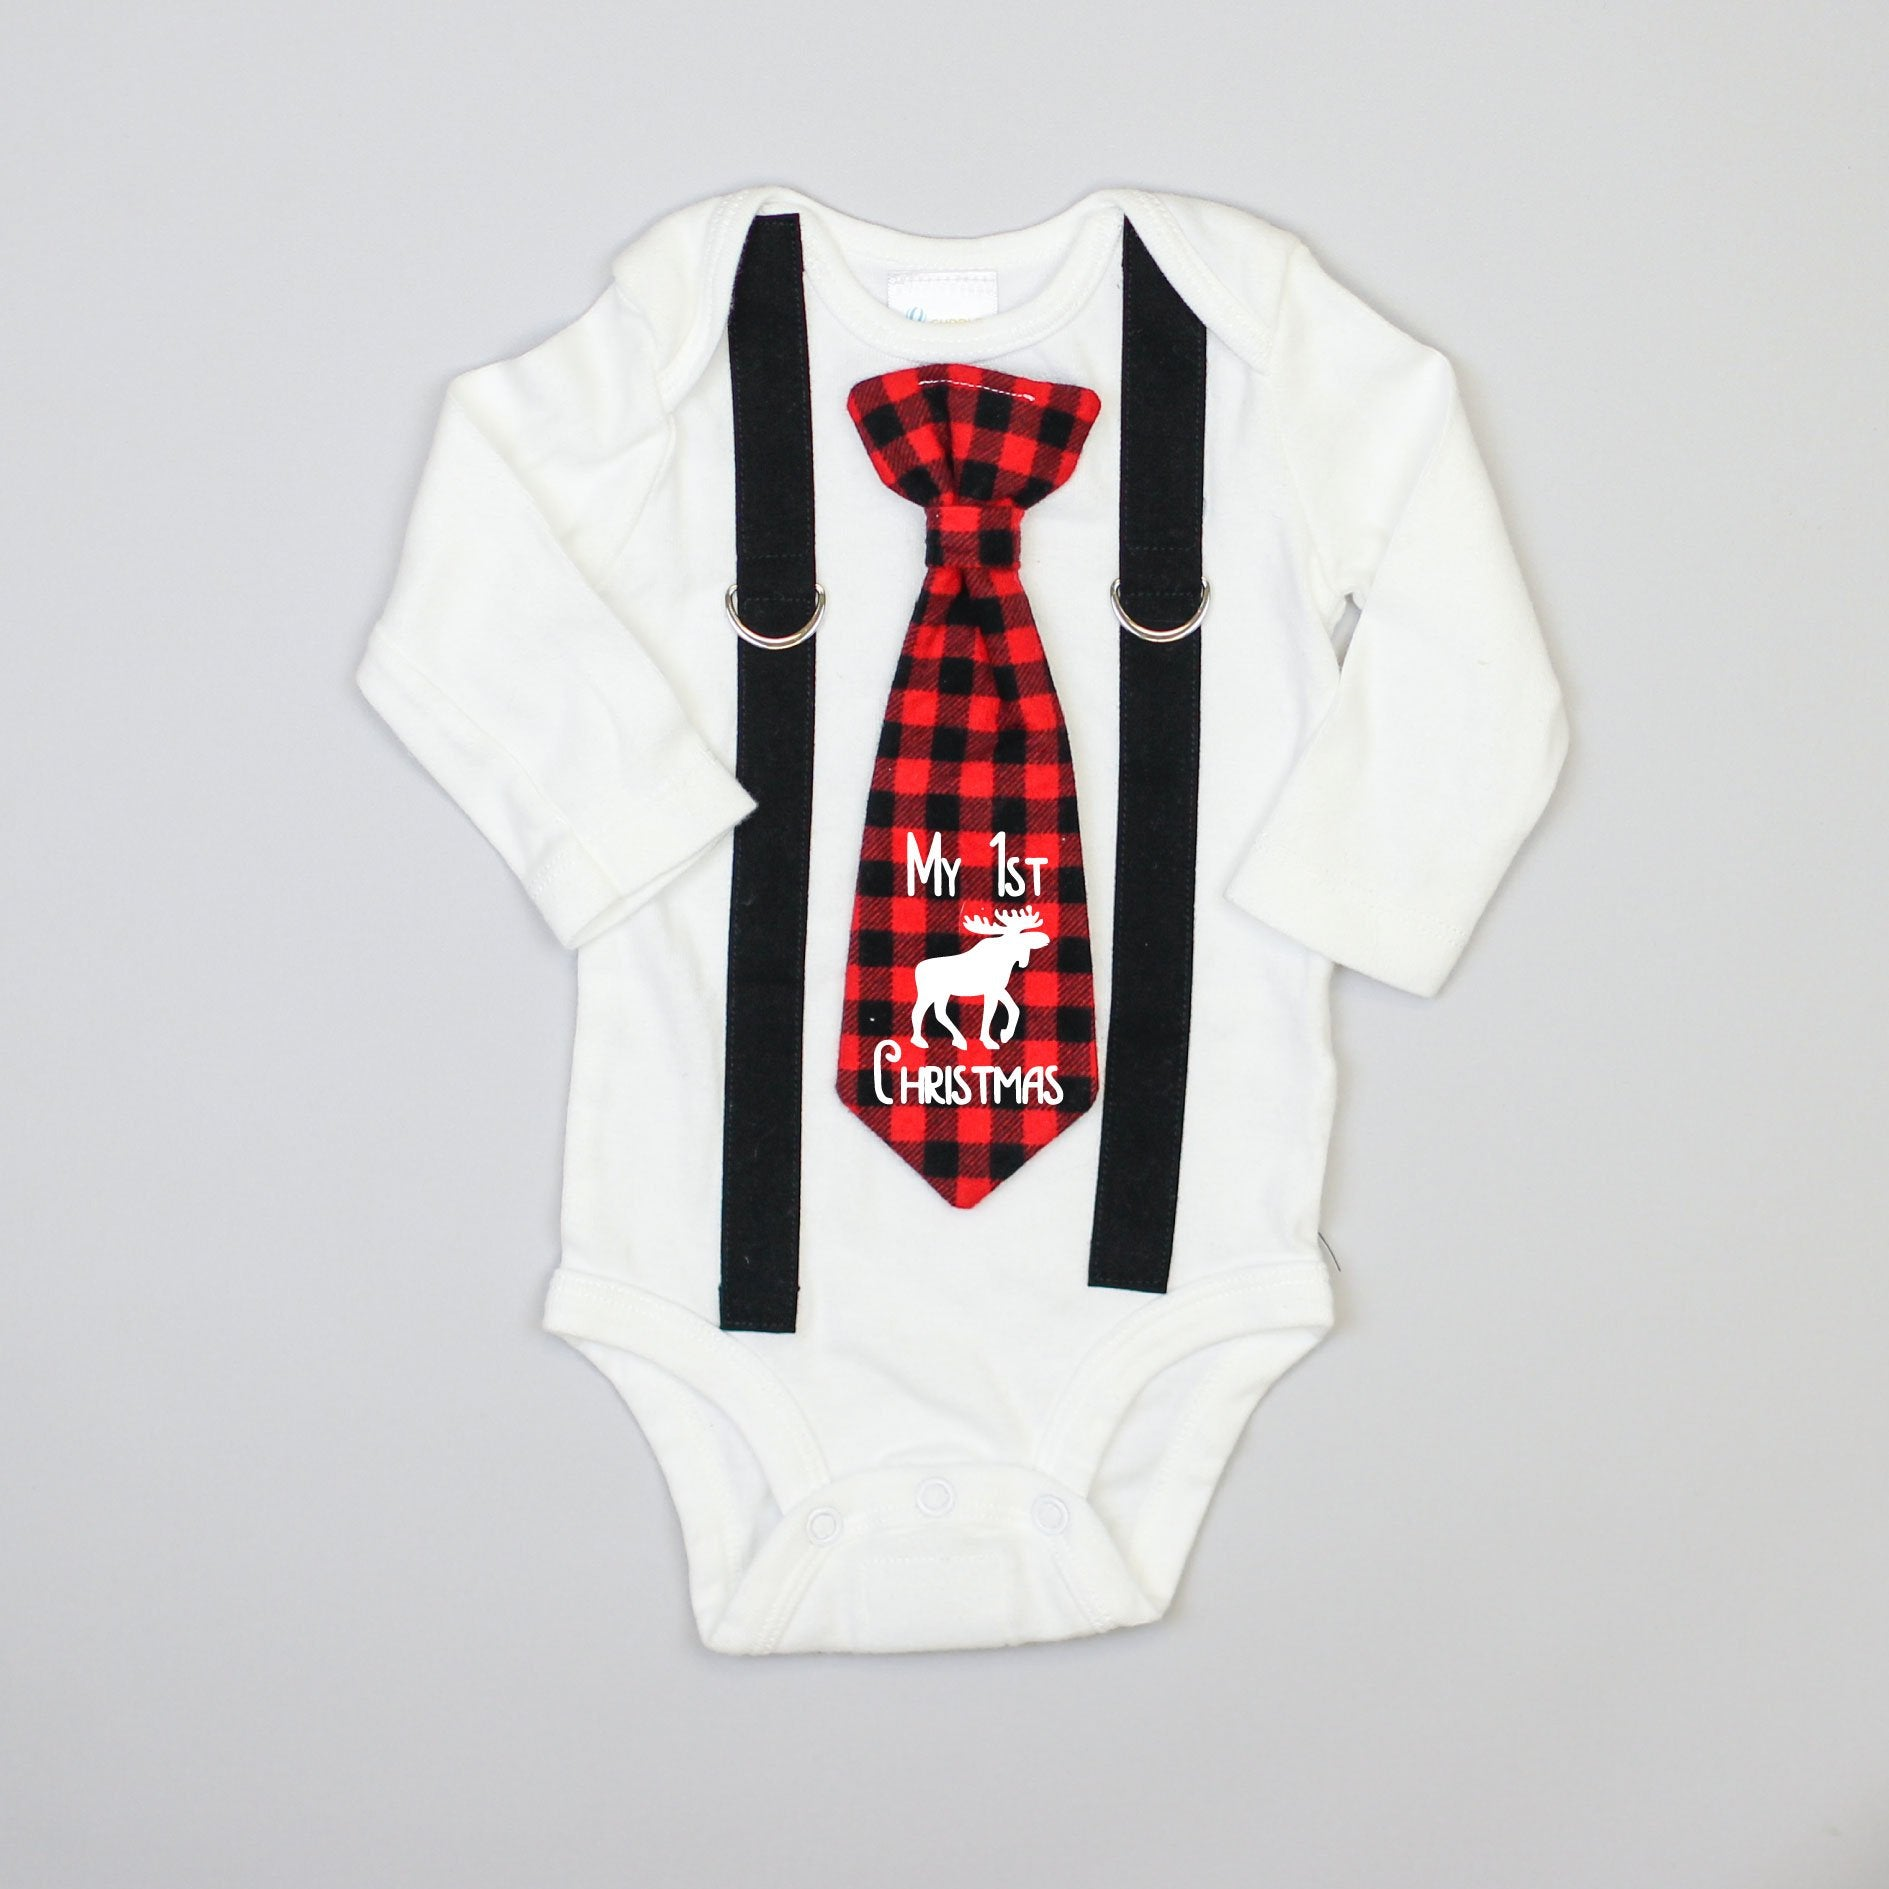 "Cuddle Sleep Dream Oh Snap Black Suspender / Buffalo Plaid ""My 1st Christmas"" Tie"